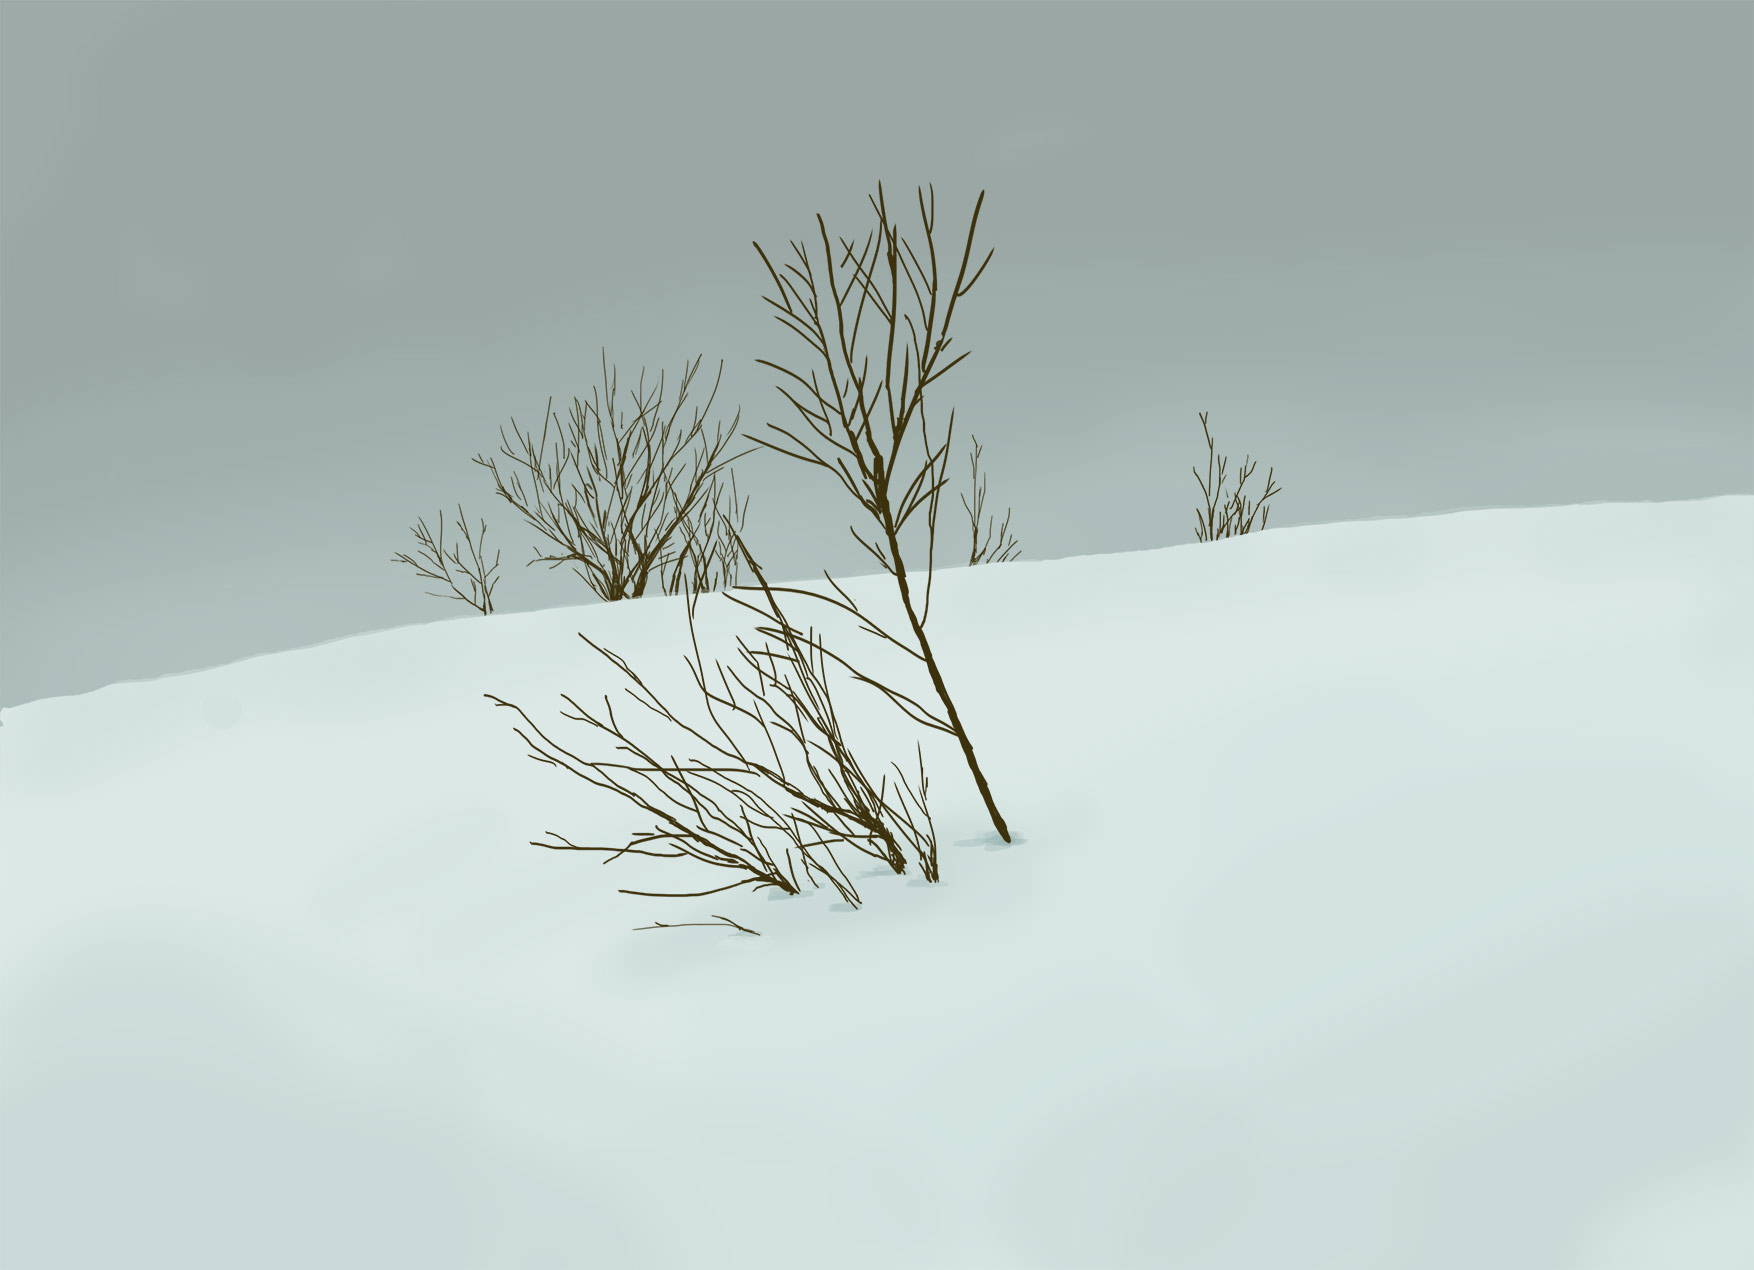 Snowy landscape, digital painting by Lisa Cuthbertson